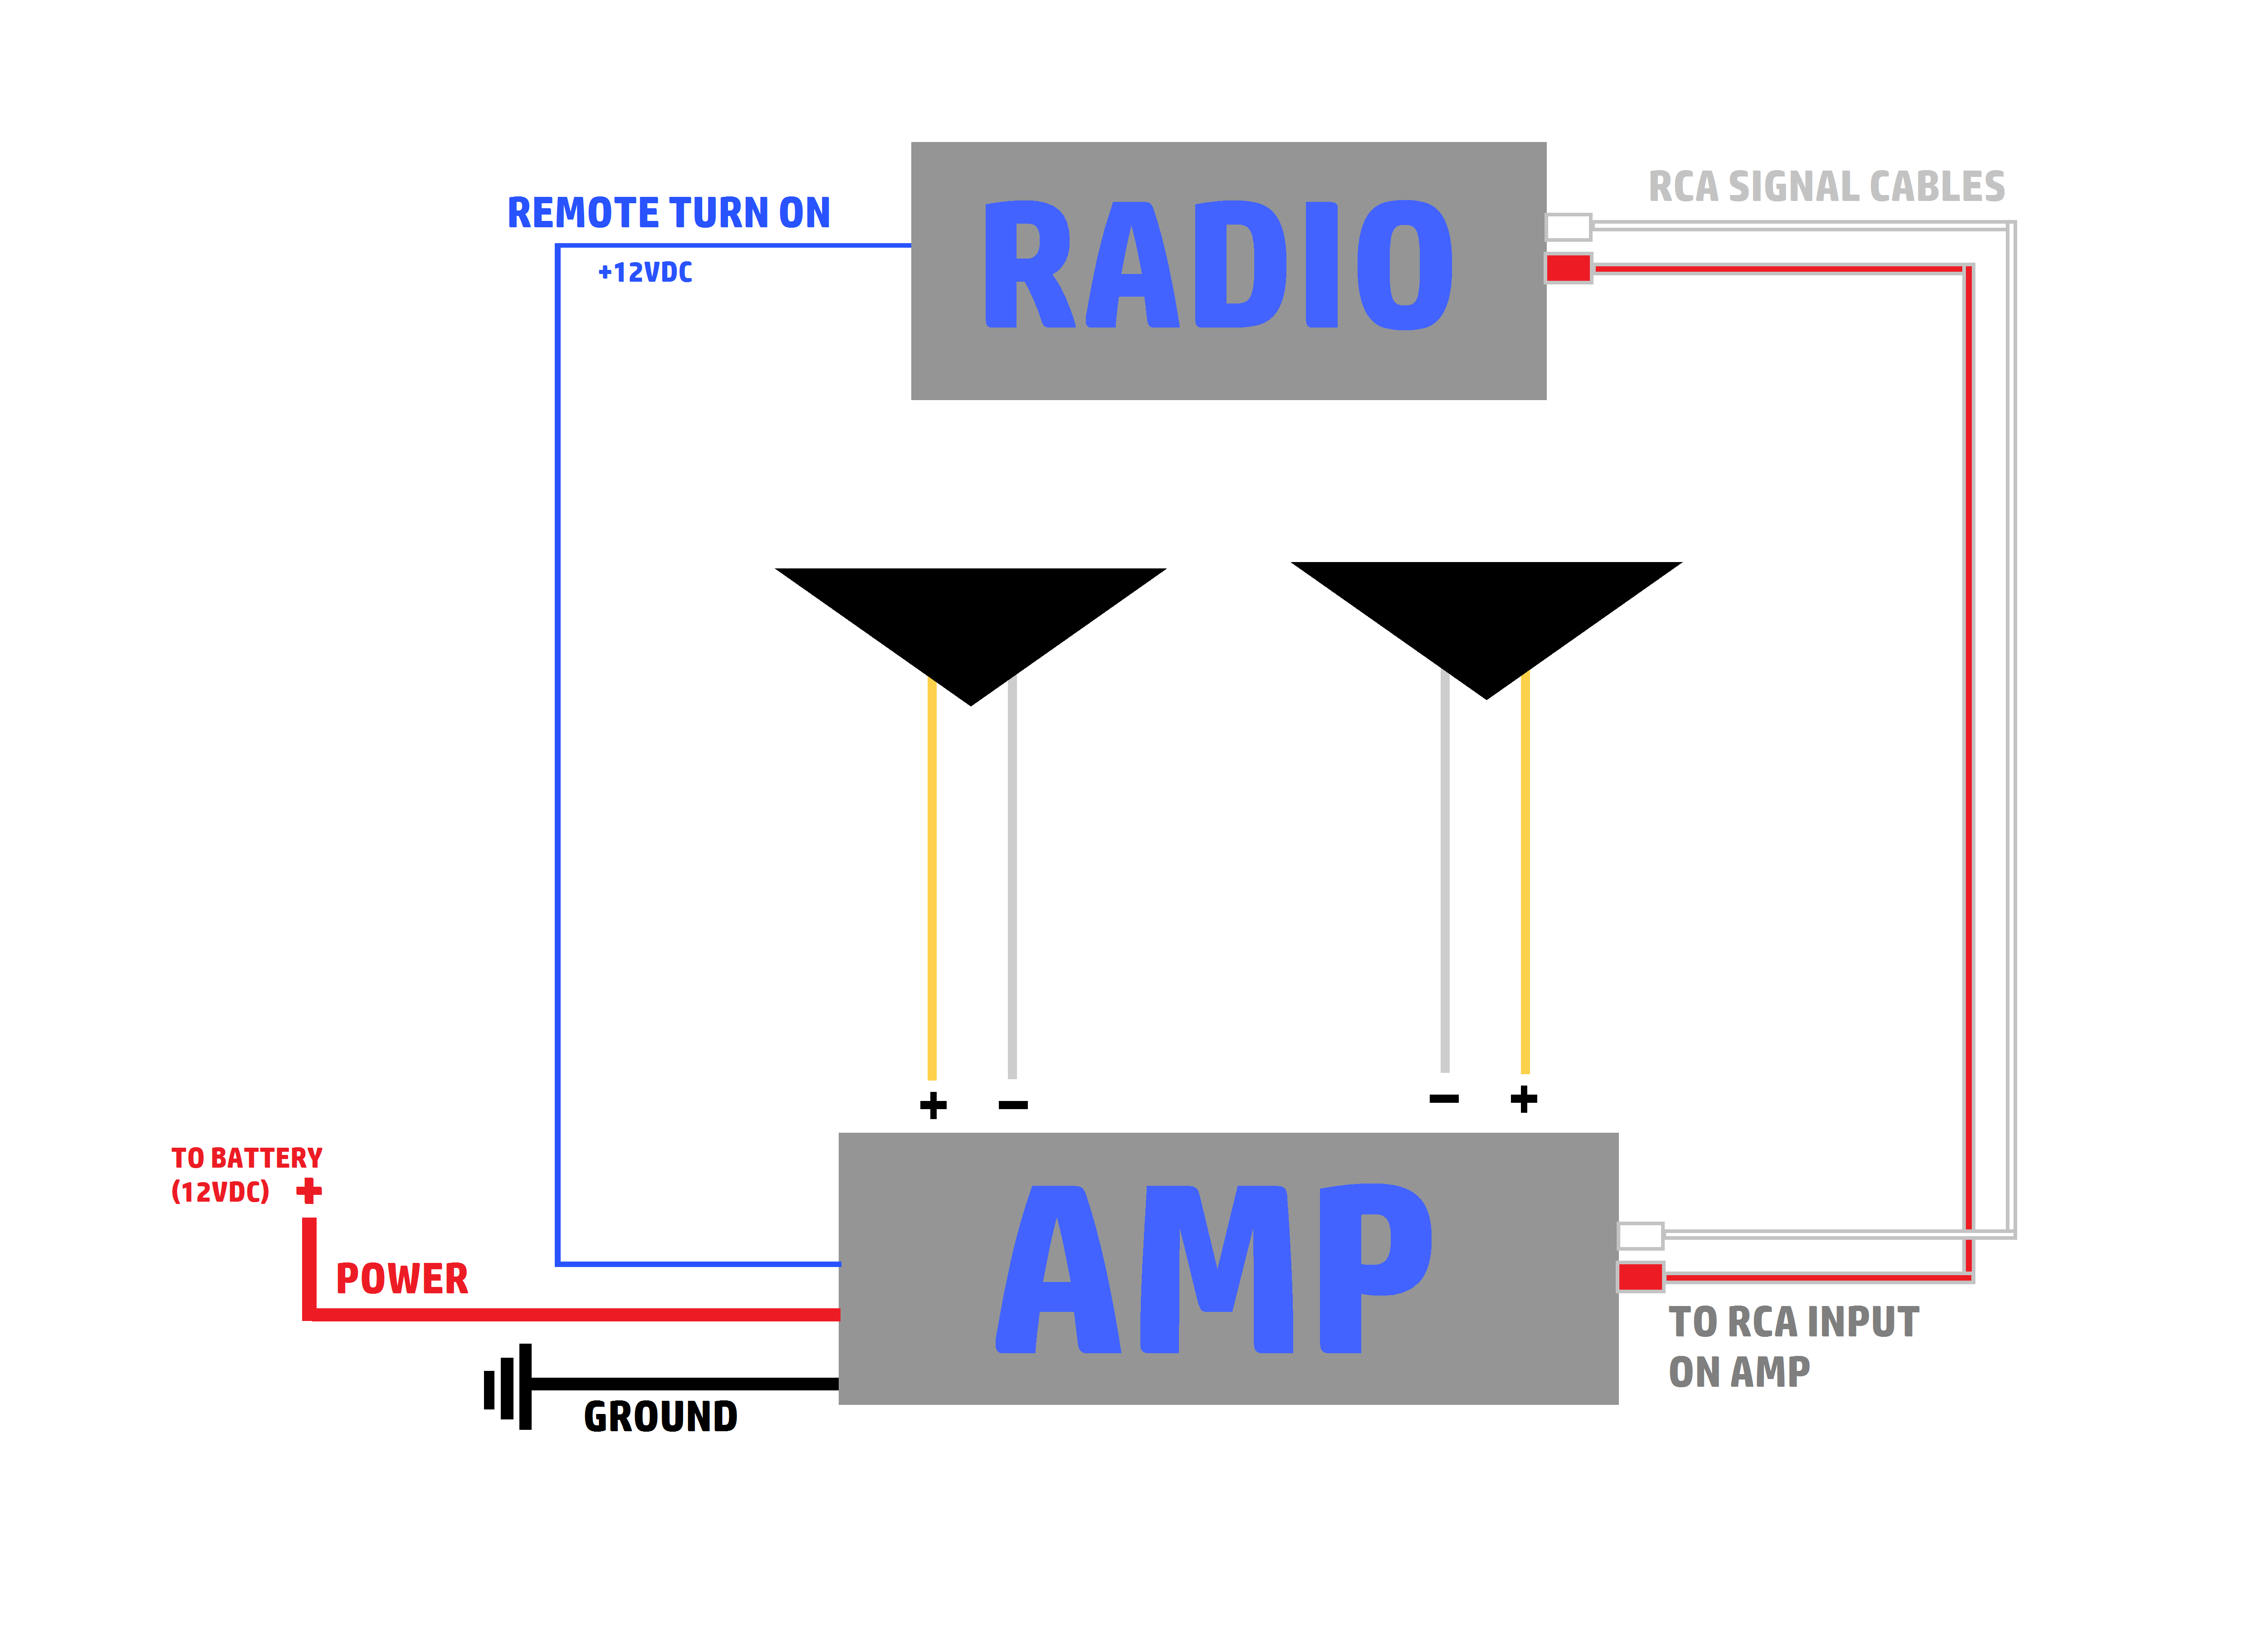 amp wiring diagram1 how to install an amp with wiring diagram car audio advice amp wiring diagram at bakdesigns.co